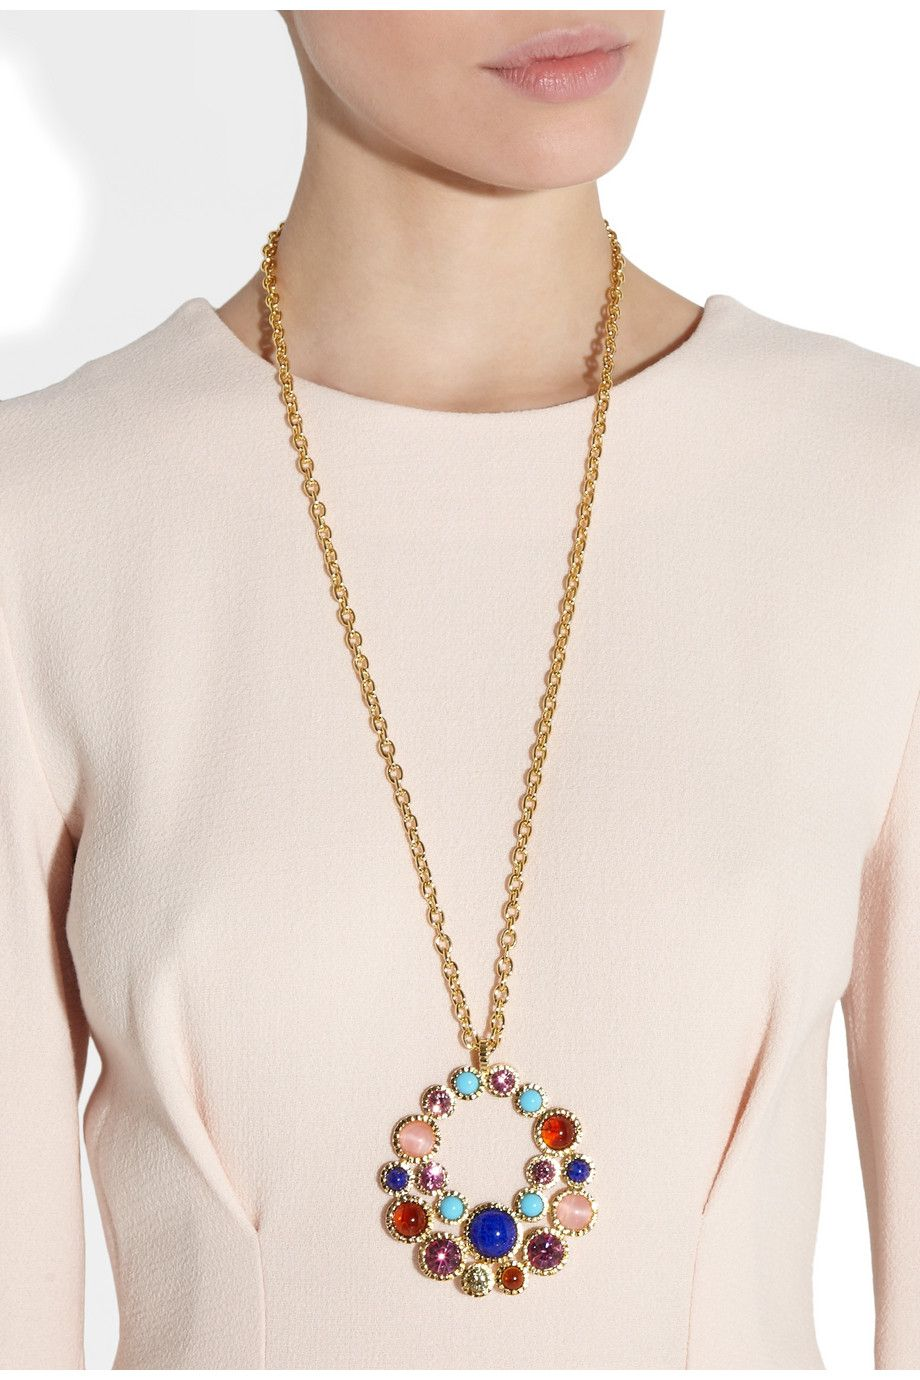 Kenneth Jay Lane|Gold-plated crystal and resin stone necklace|NET-A-PORTER.COM